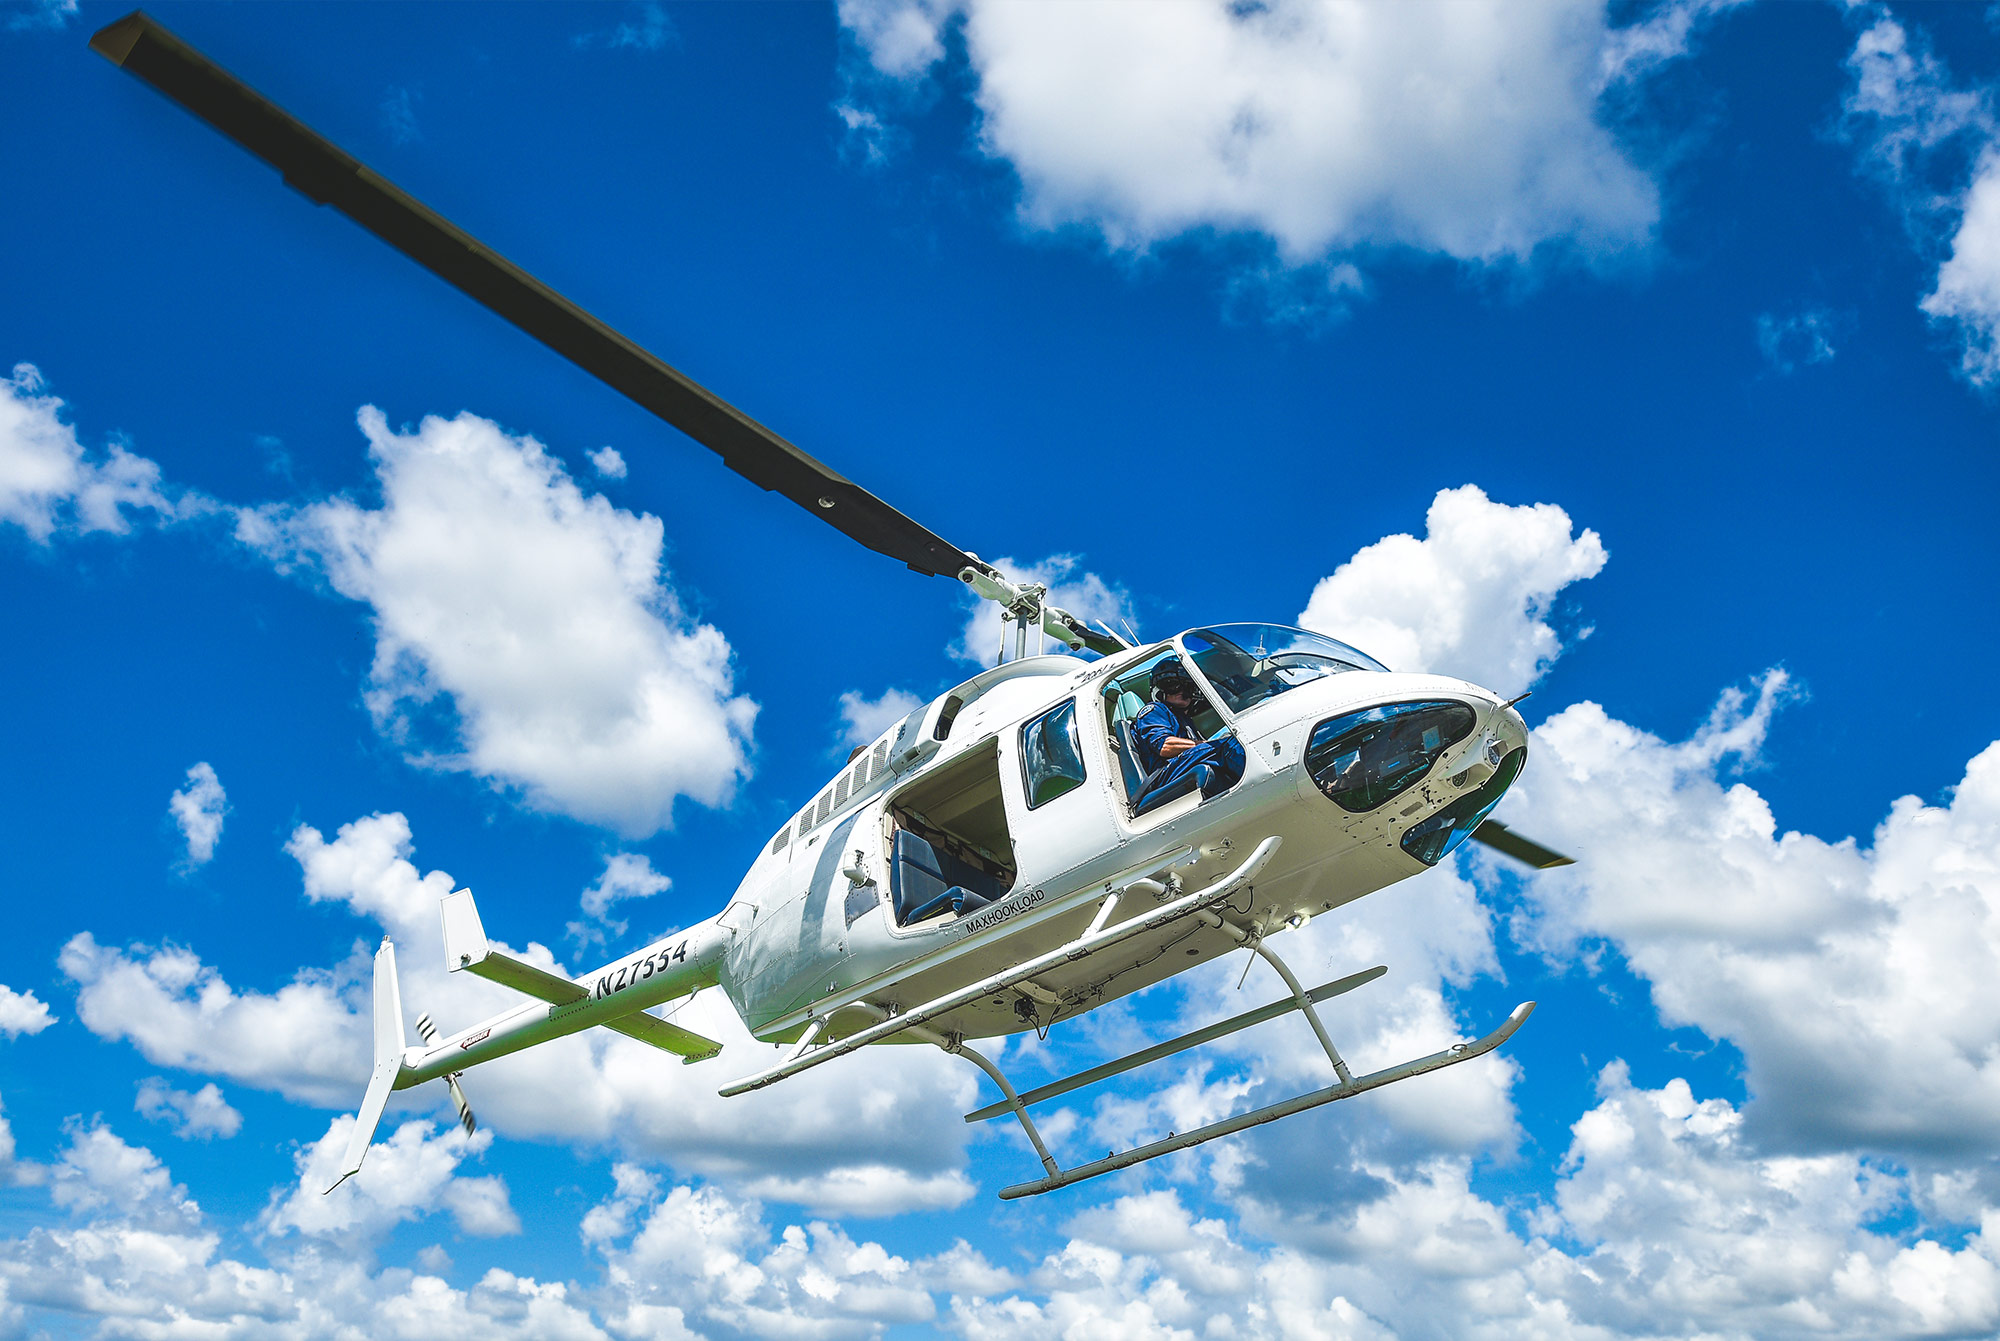 heli-aviation-fleet Sarasota Florida